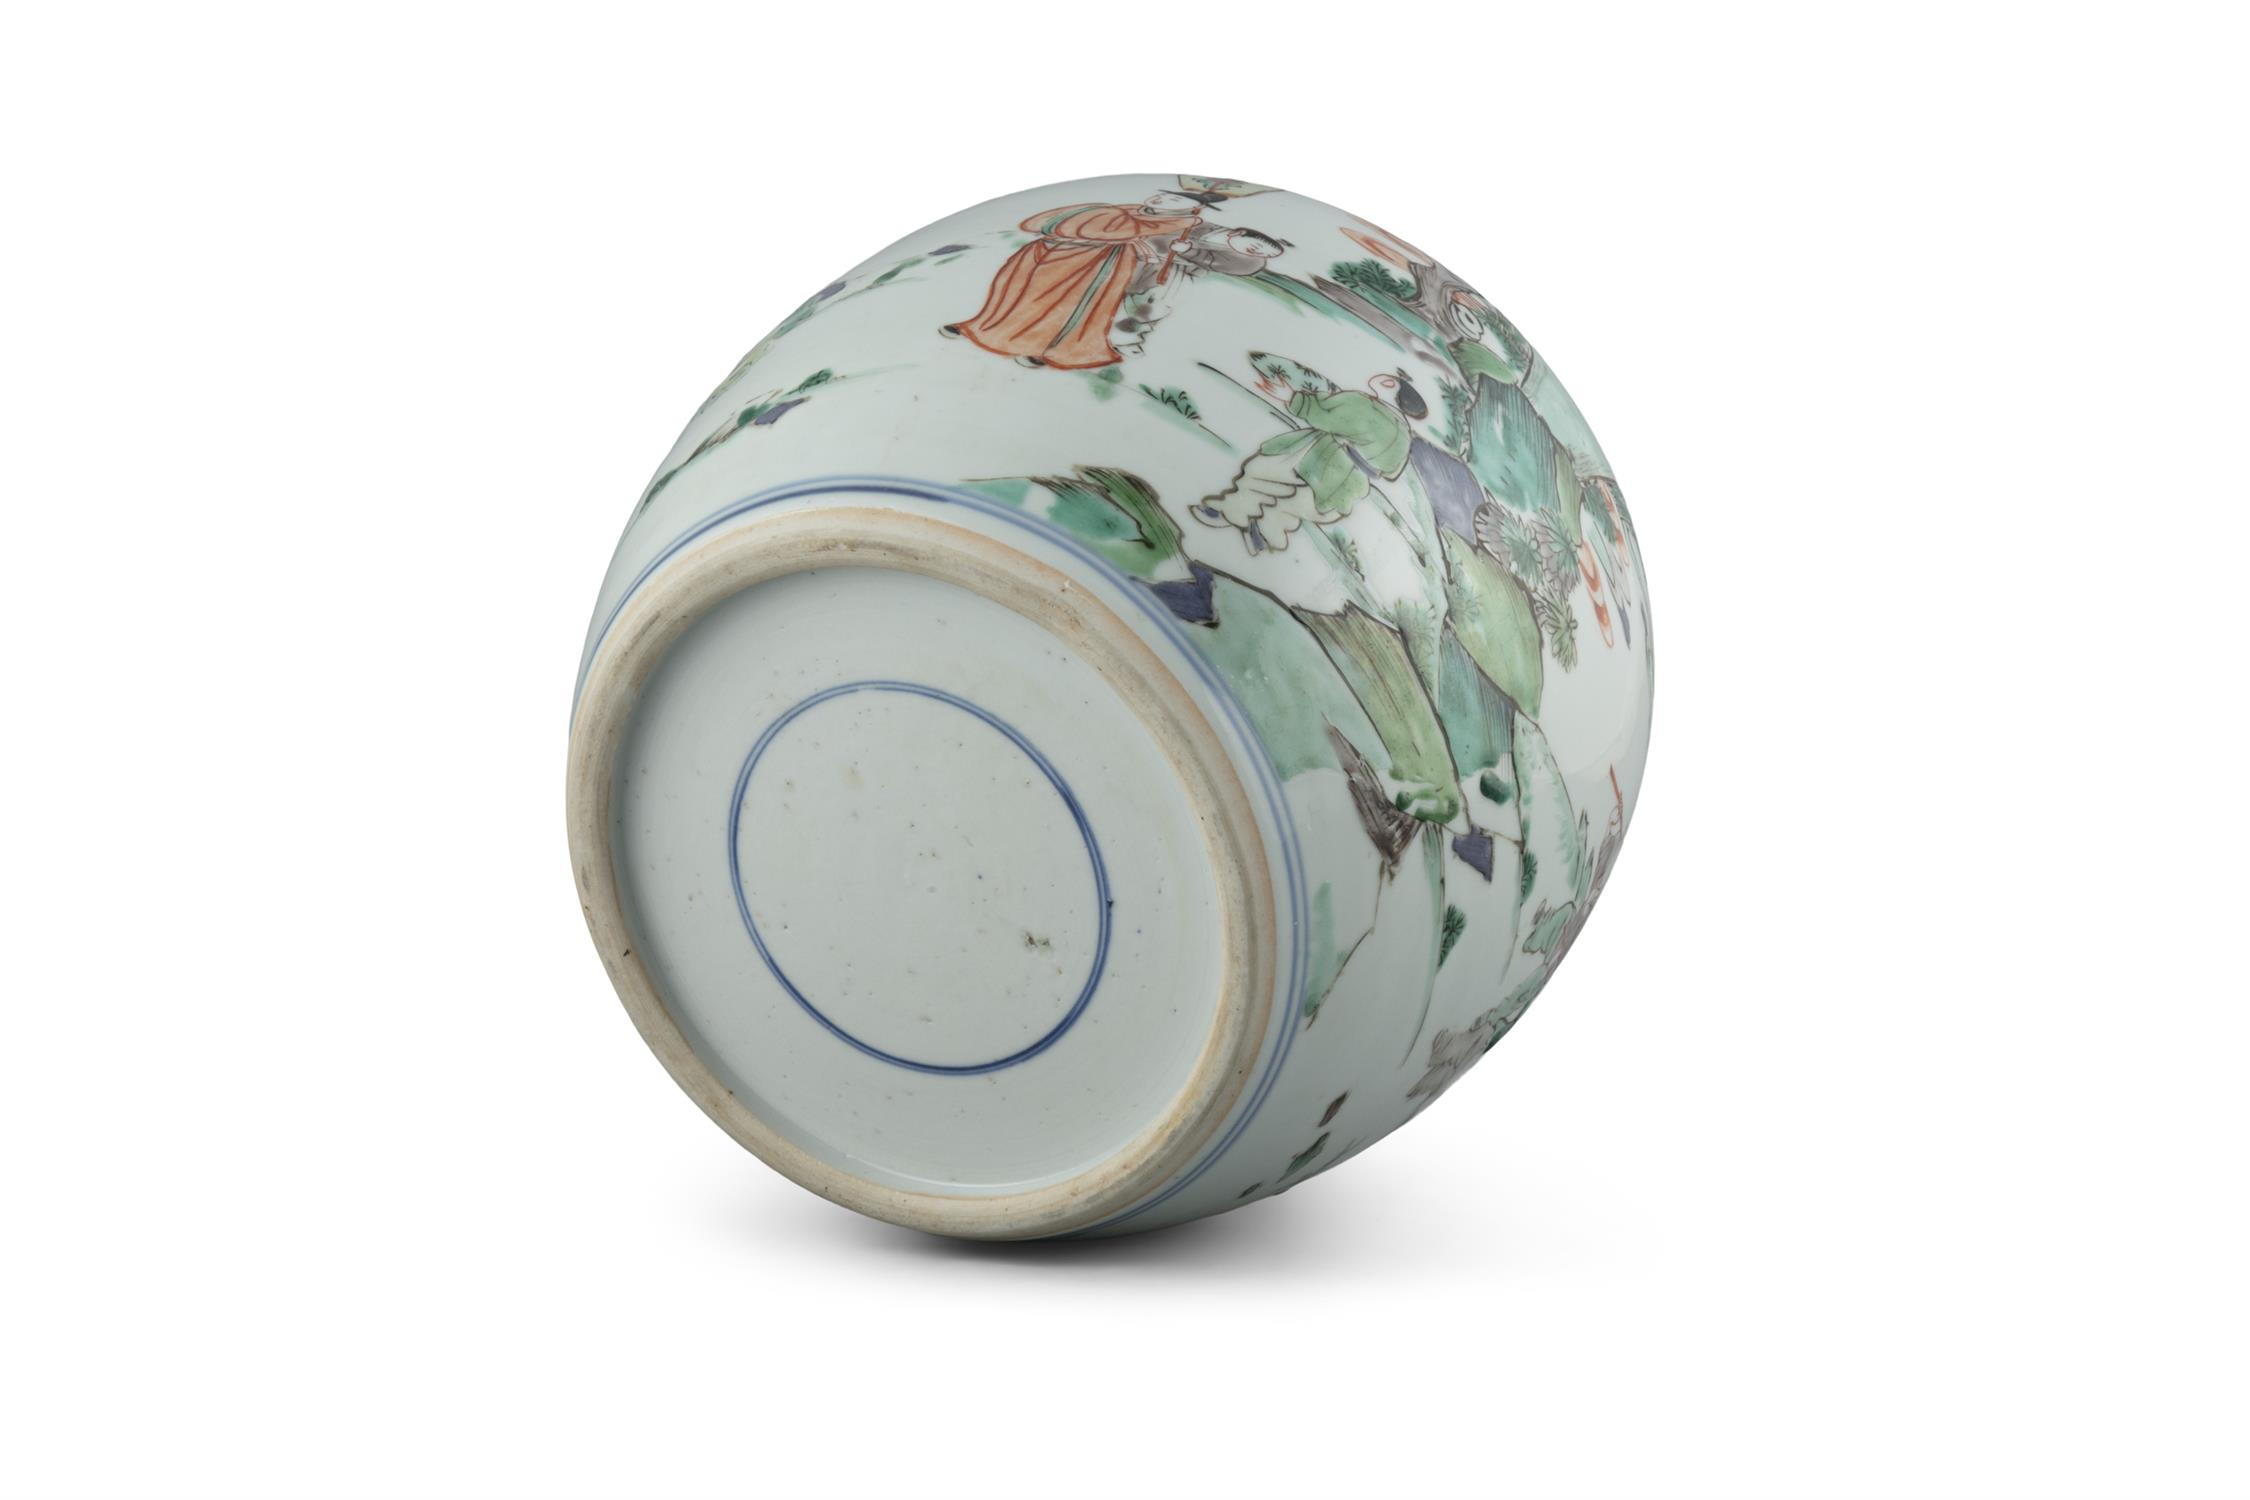 A FAMILLE VERTE 'BOY AND QILIN' PORCELAIN GINGER JAR China, Qing Dynasty, Kangxi period Adorned in - Image 15 of 20